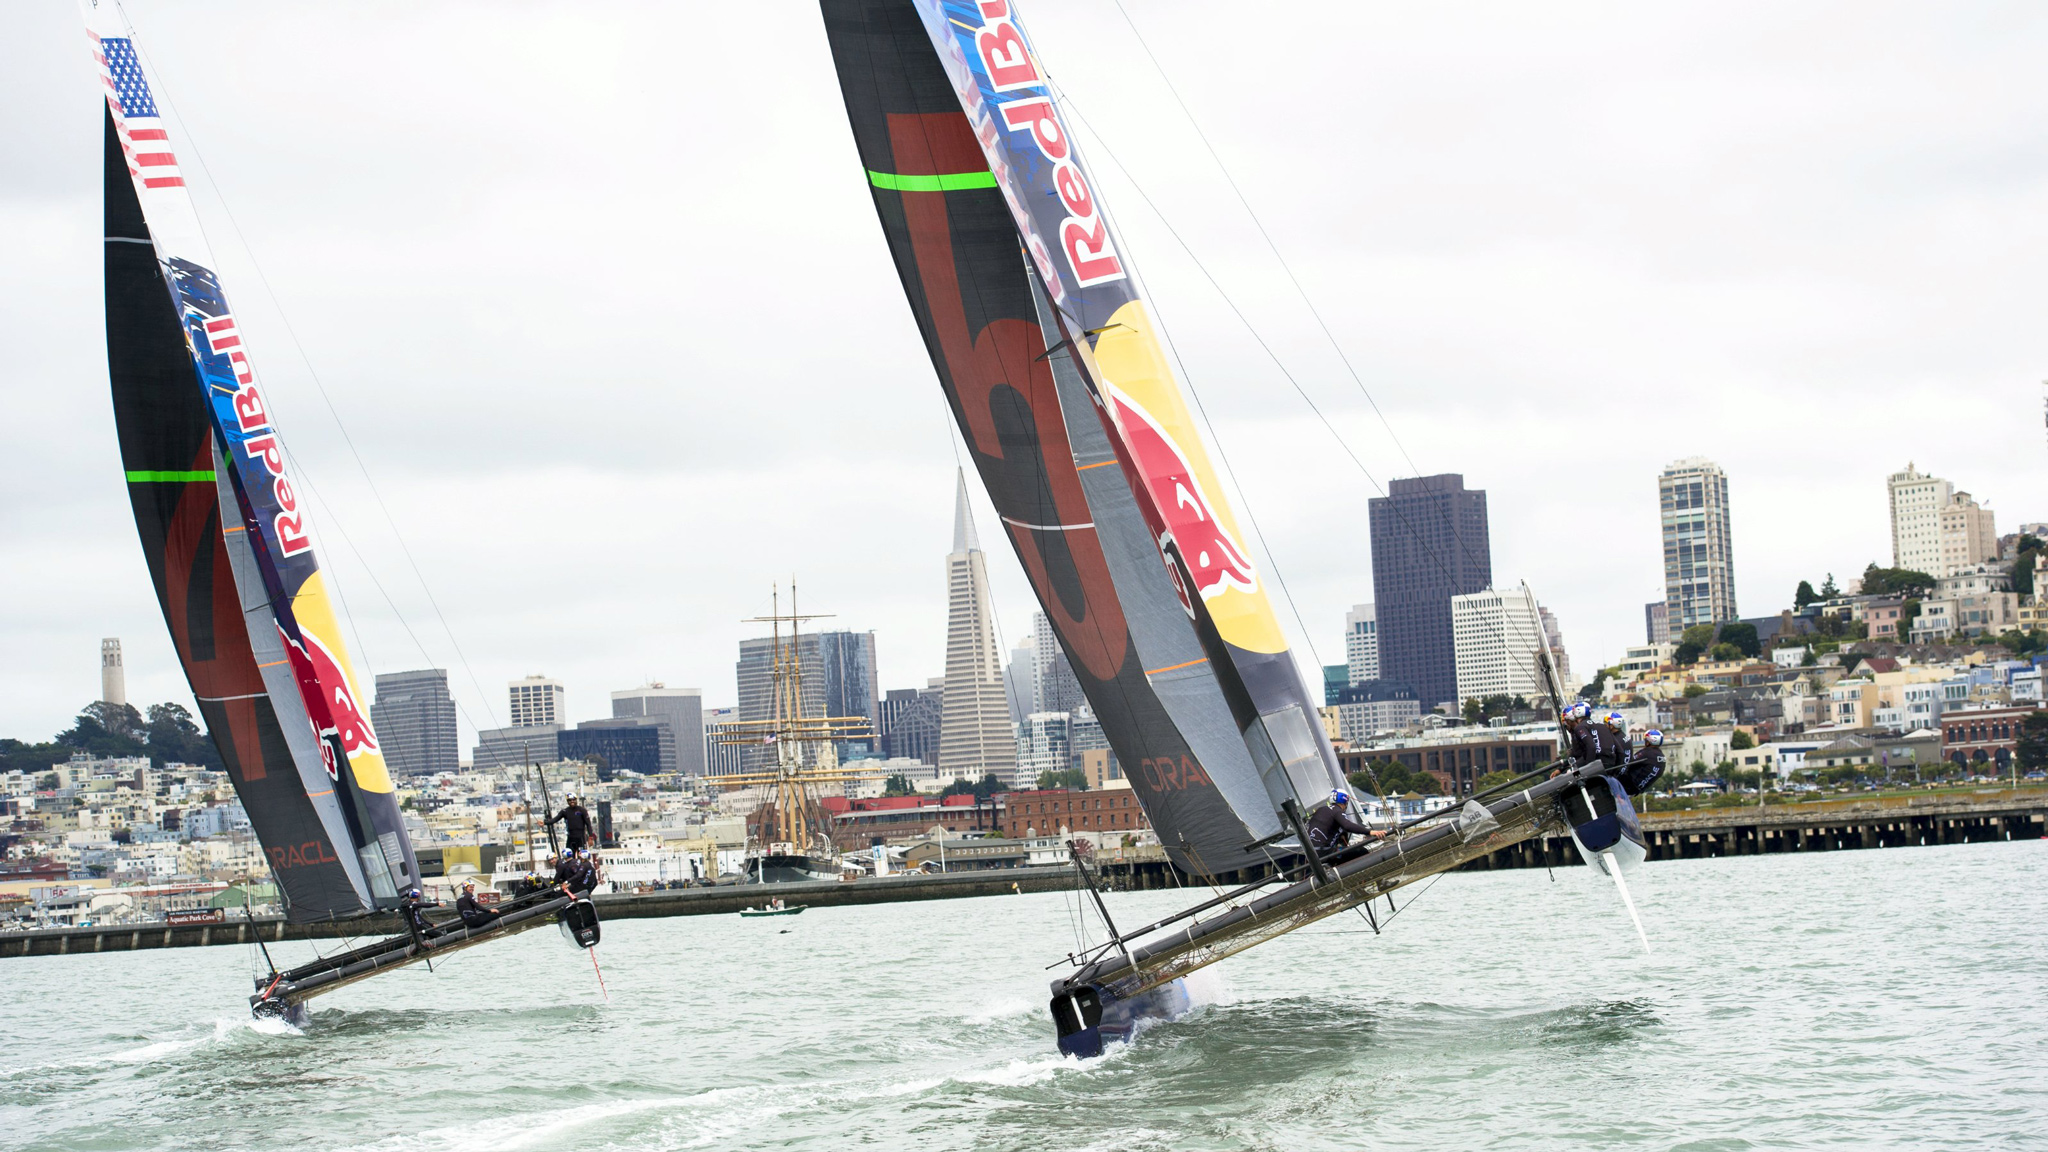 Jamie O'Brien and Travis Rice raced on AC45s, which are the 45-foot catamarans used in the America's Cup World Series events, allowing teams to get used to sailing the new boat design.